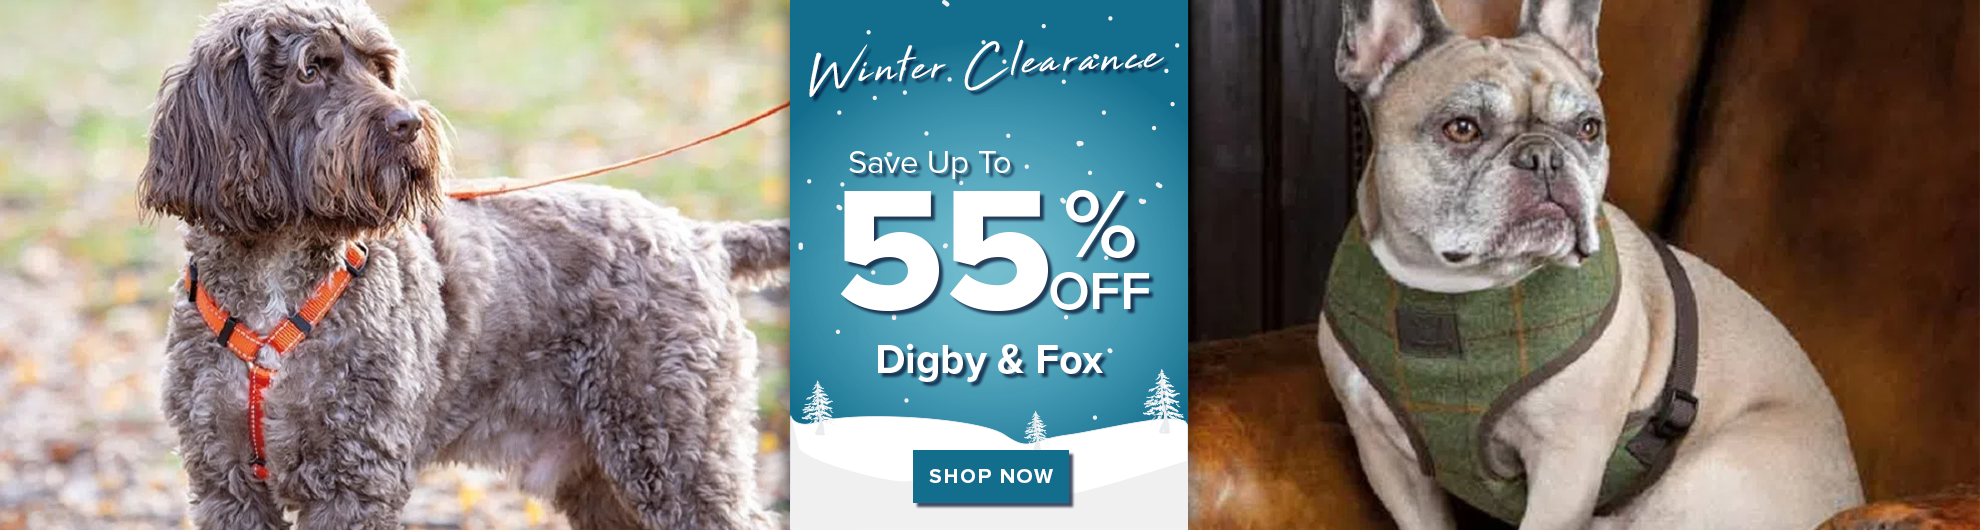 Digby and Fox on Sale